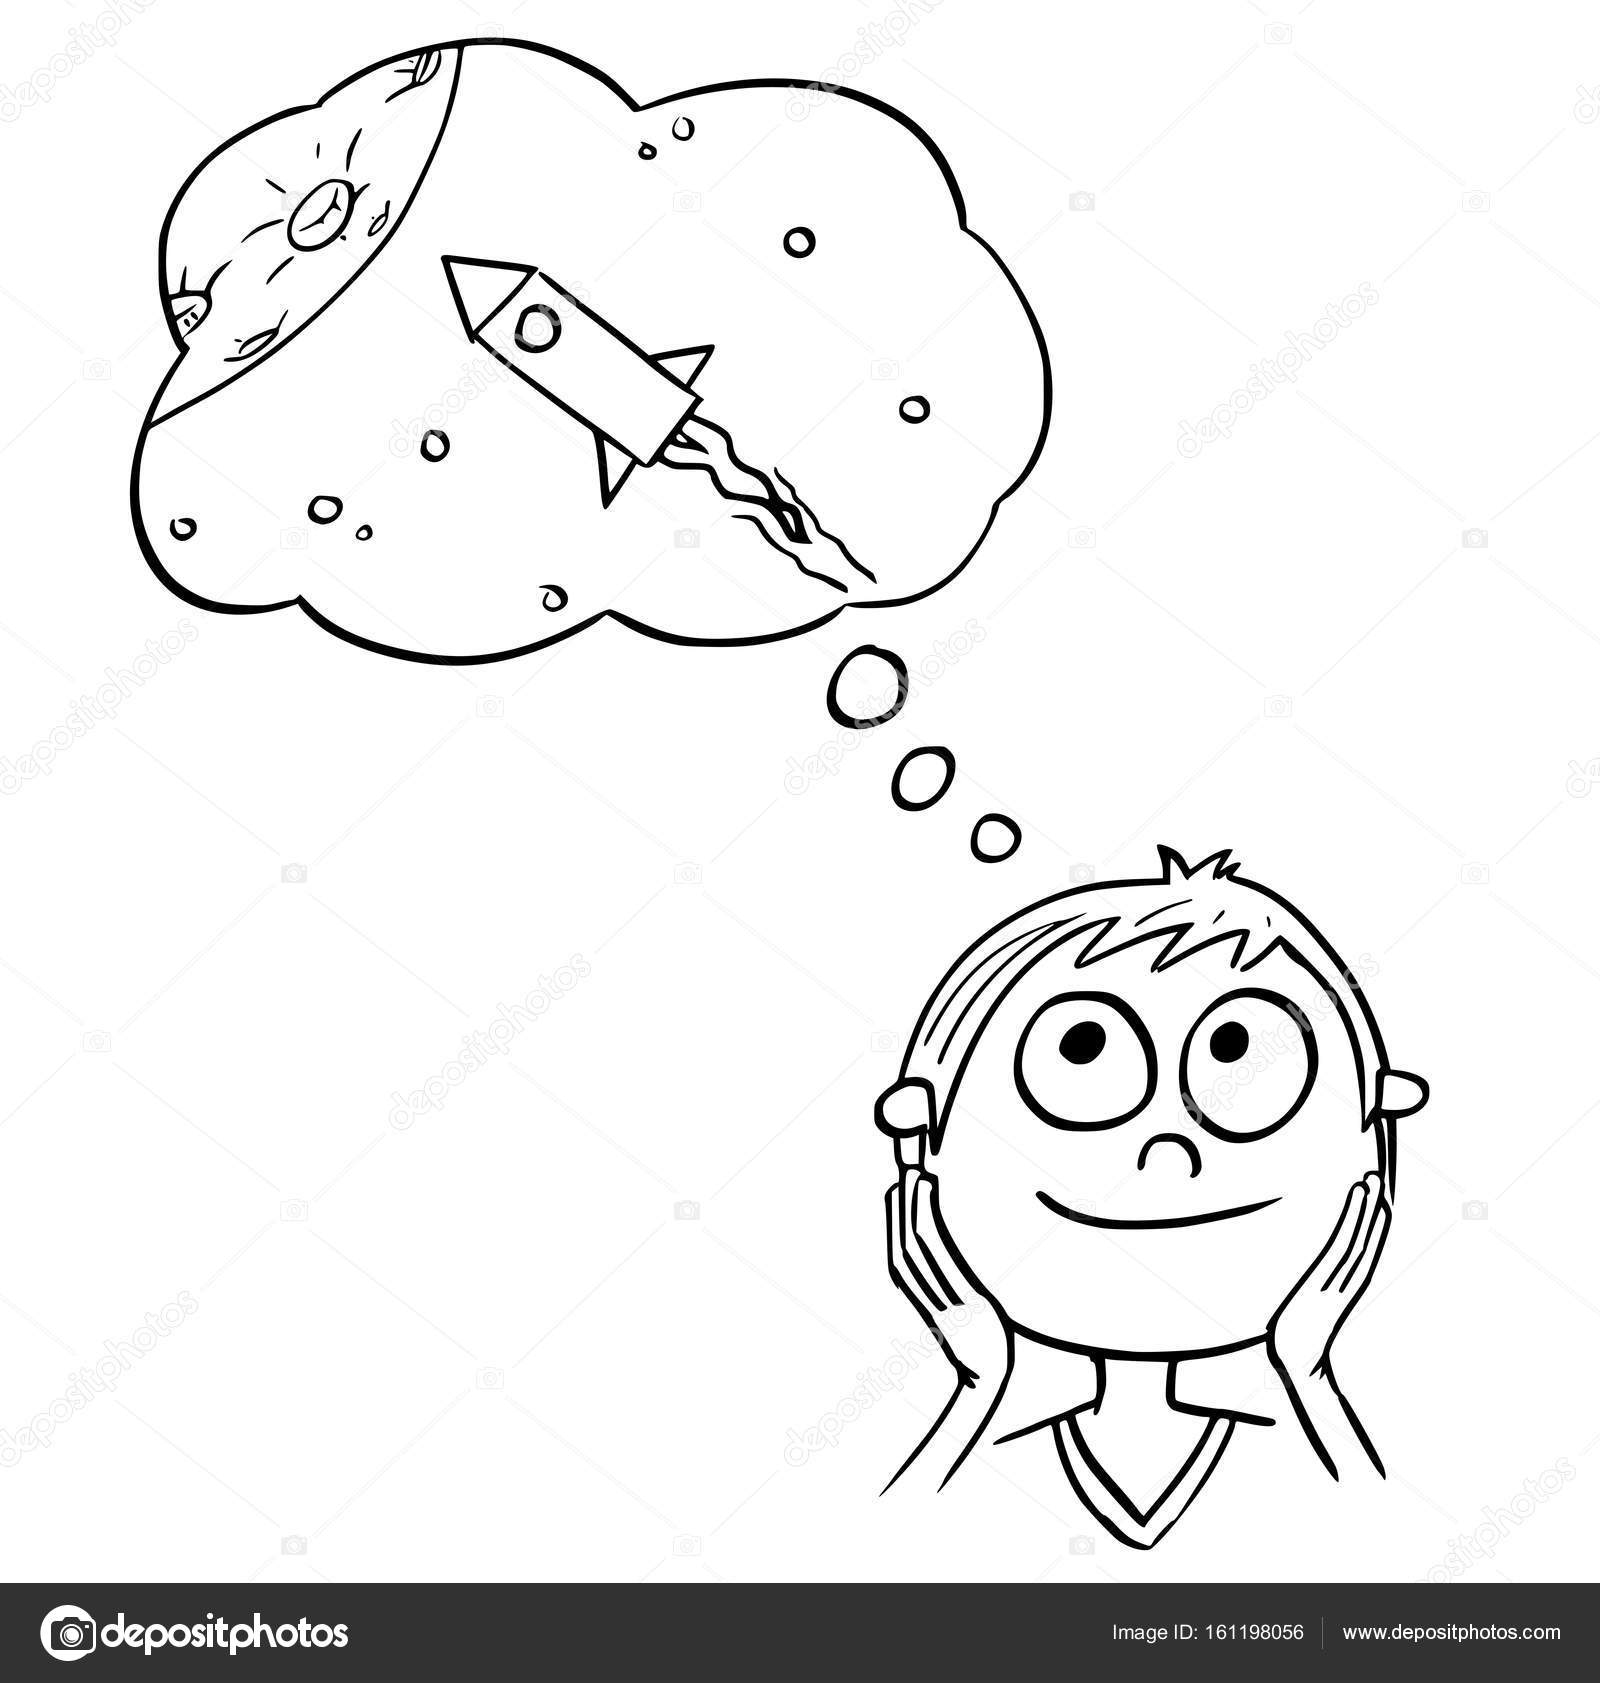 1600x1683 Cartoon Illustration Of Boy Dreaming About Space Travels Stock